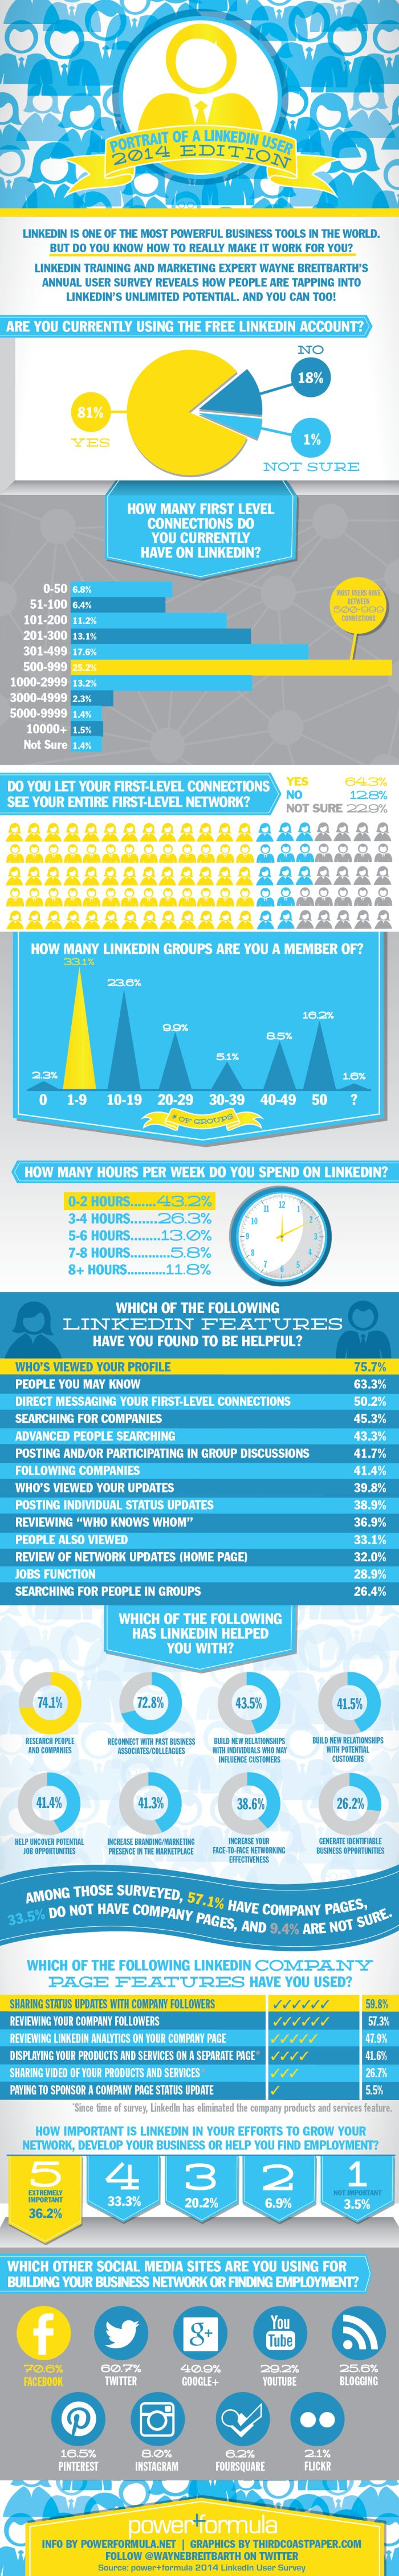 How Does the Average Person Use #LinkedIn in 2014?  - Who's Viewed Your Profile is the most popular LinkedIn feature. - Only 18% of the people surveyed pay for their LinkedIn account. - Most users have between 500 and 900 LinkedIn connections. - 43% of people spend under 2 hours a week on LinkedIn. - Of those asked, 70% use Facebook as well as LinkedIn for business purposes.